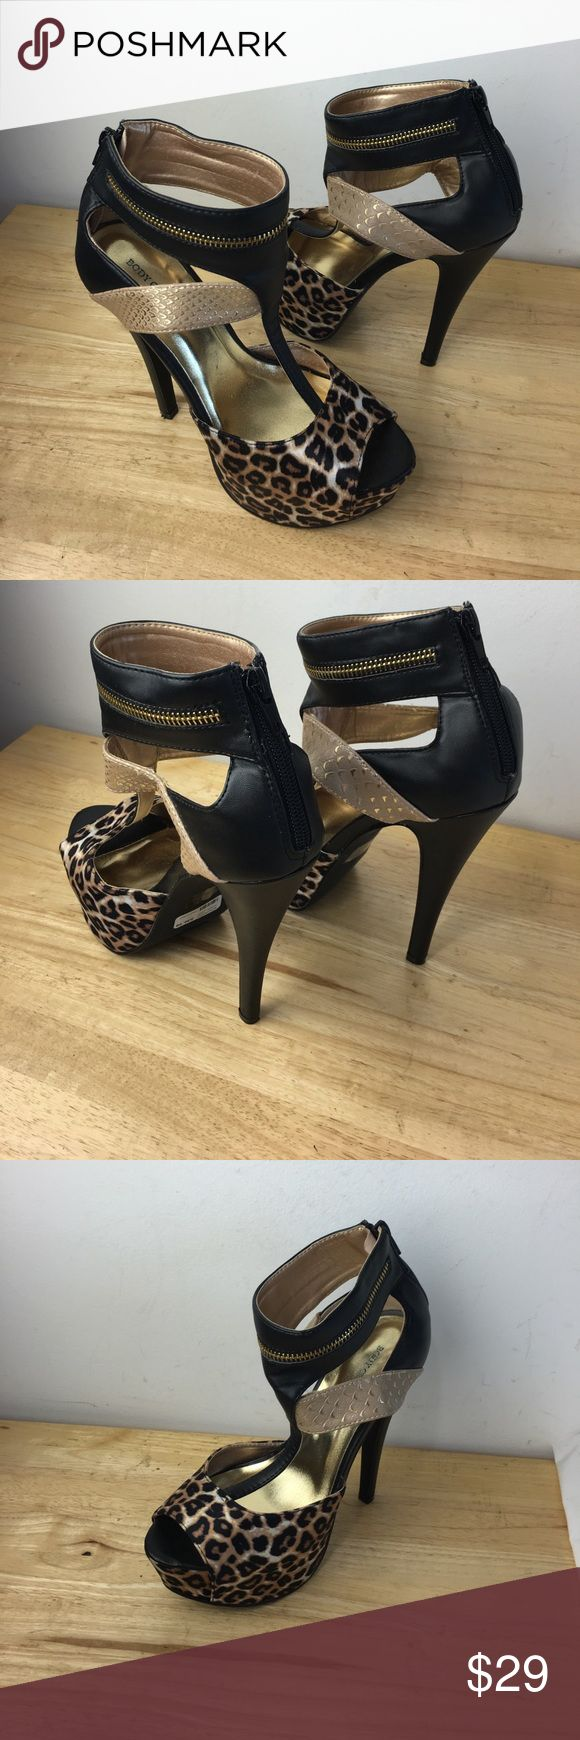 "Body Central Women's High Heels 6"" Heels Good preowned condition Animal Print Body Central Shoes Heels"